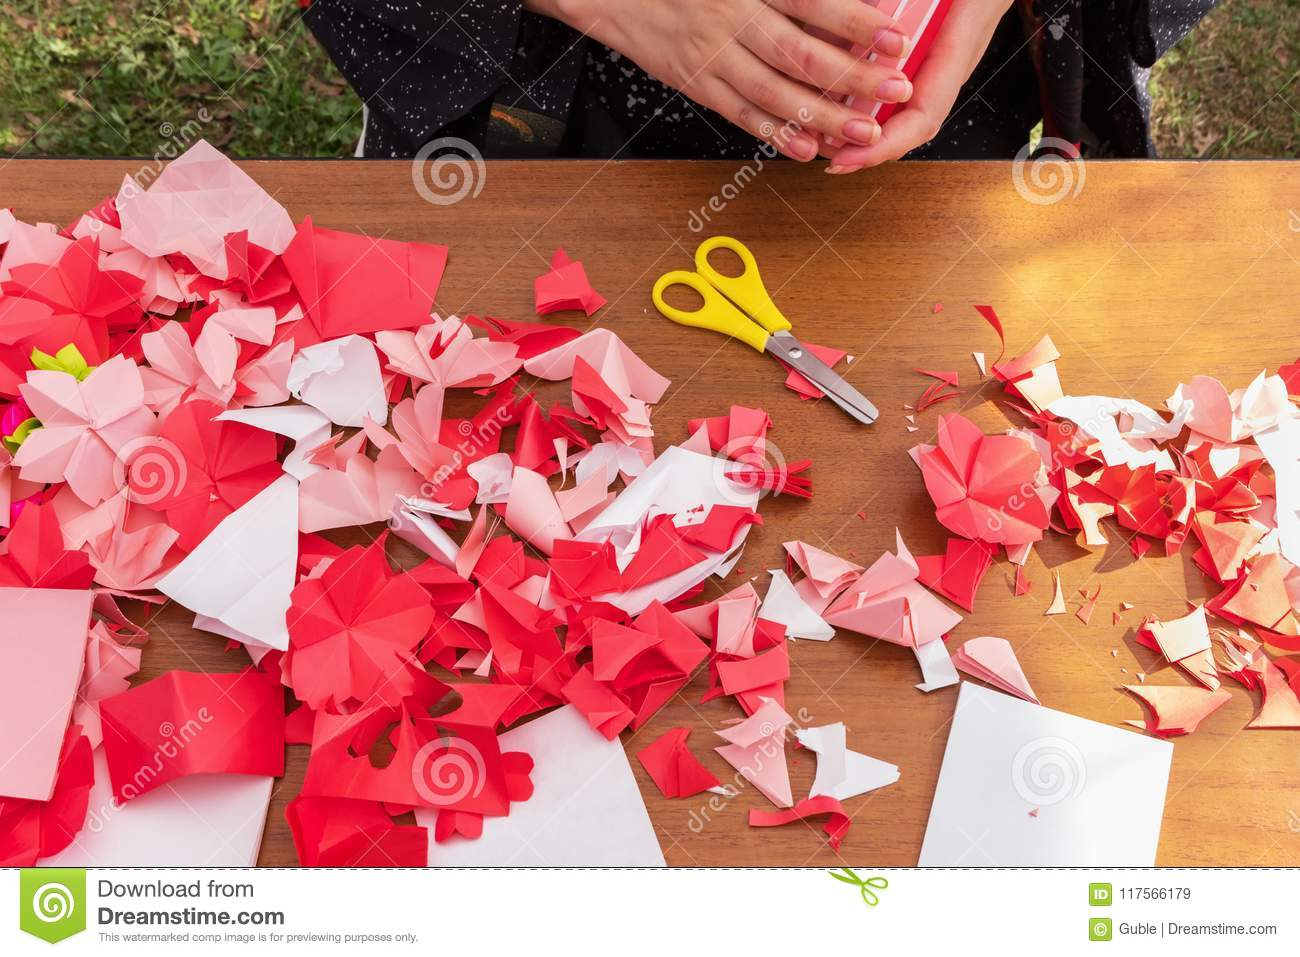 Japanese Woman Shows A Master Class On Creating Origami Flowers From